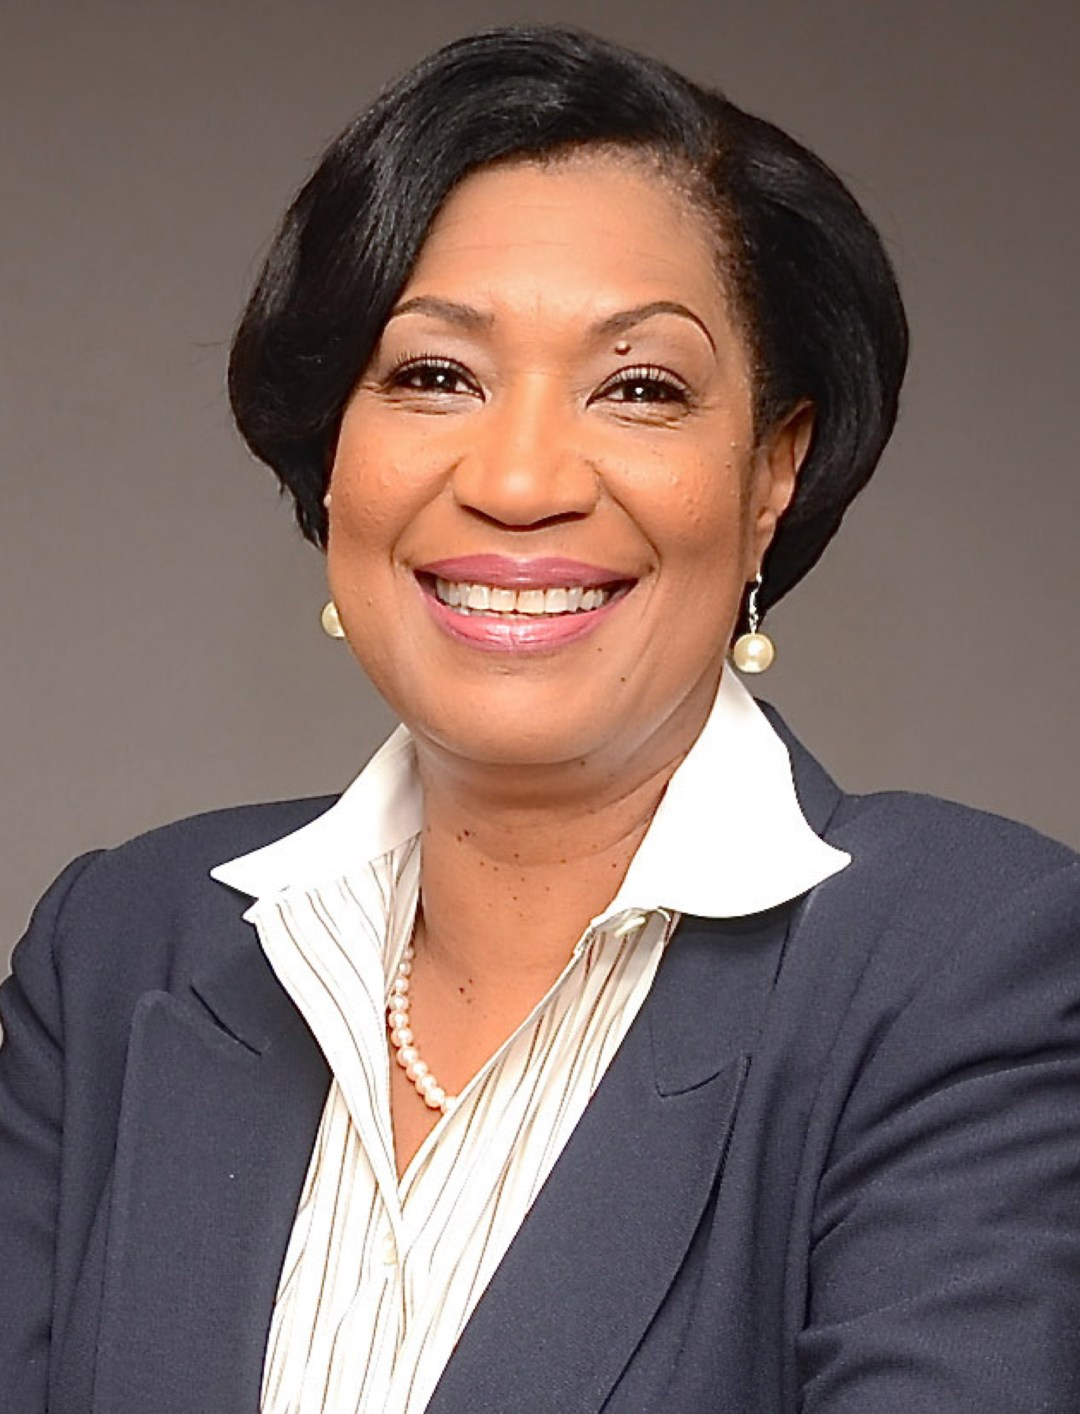 Lavern Chatman